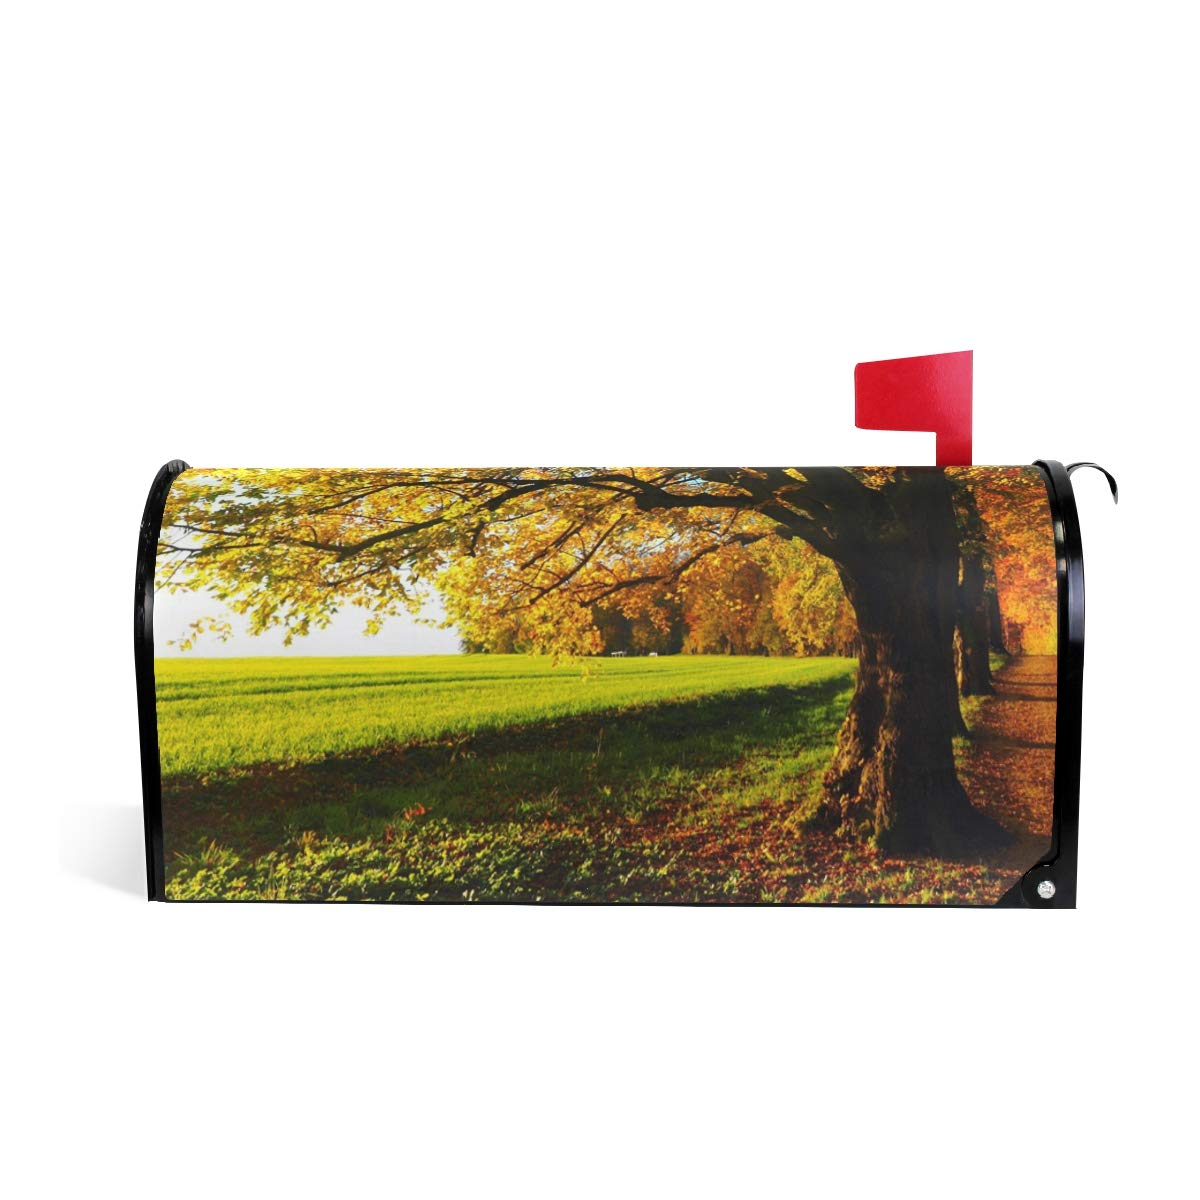 HEOEH Tree Sun Light Forest Magnetic Mailbox Cover Home Garden Decorations Oversized 25.5 x 20.8 inches